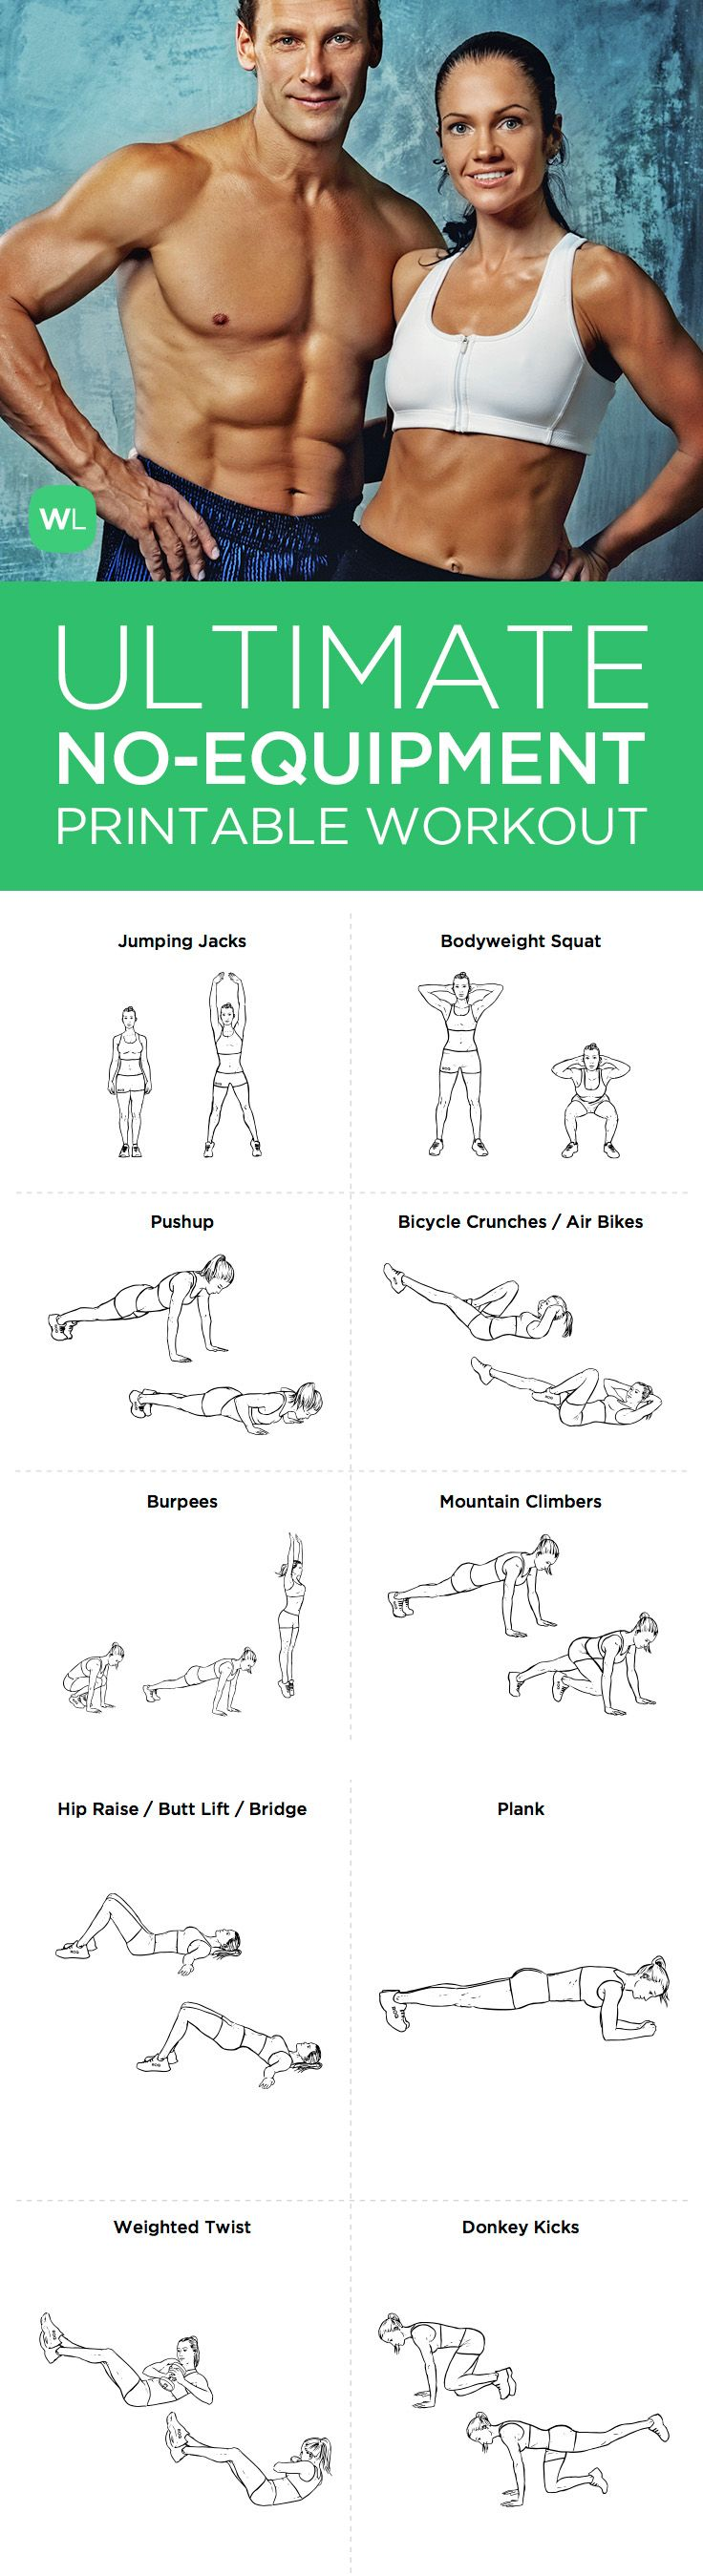 Need a good full-body home-based workout that doesnt require gym equipment? More Home Bas Workout, Gym Equipment, Requir Gym, Body Workout, Printable Workout, Two Pag Bodyweight, Bodyweight Workout, No Equipment Workout, Good Workout Full-body home-based